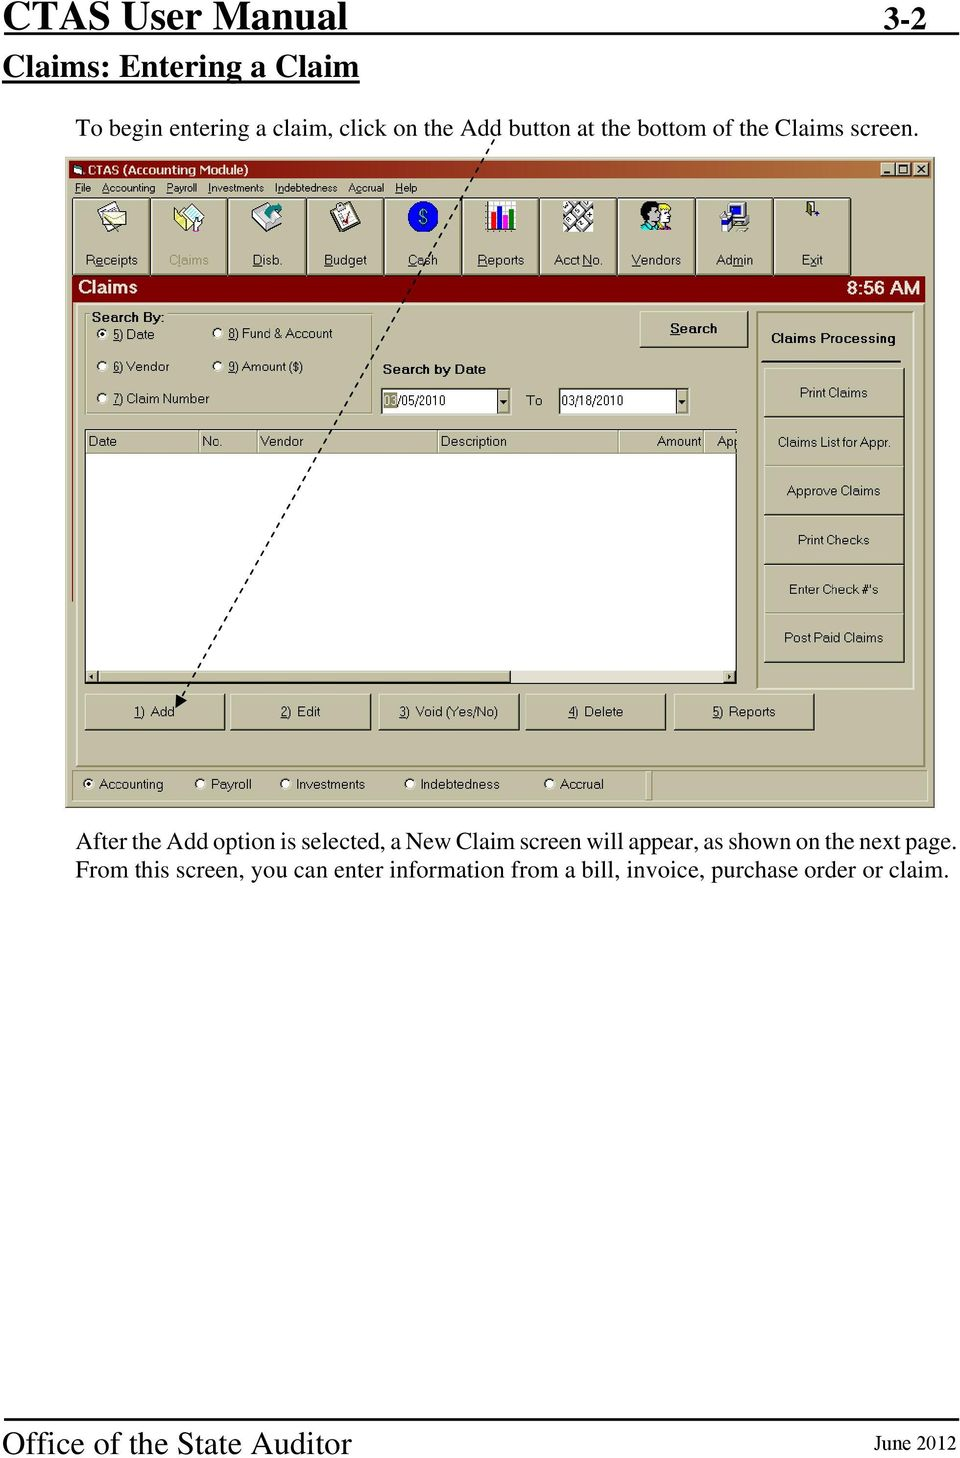 After the Add option is selected, a New Claim screen will appear, as shown on